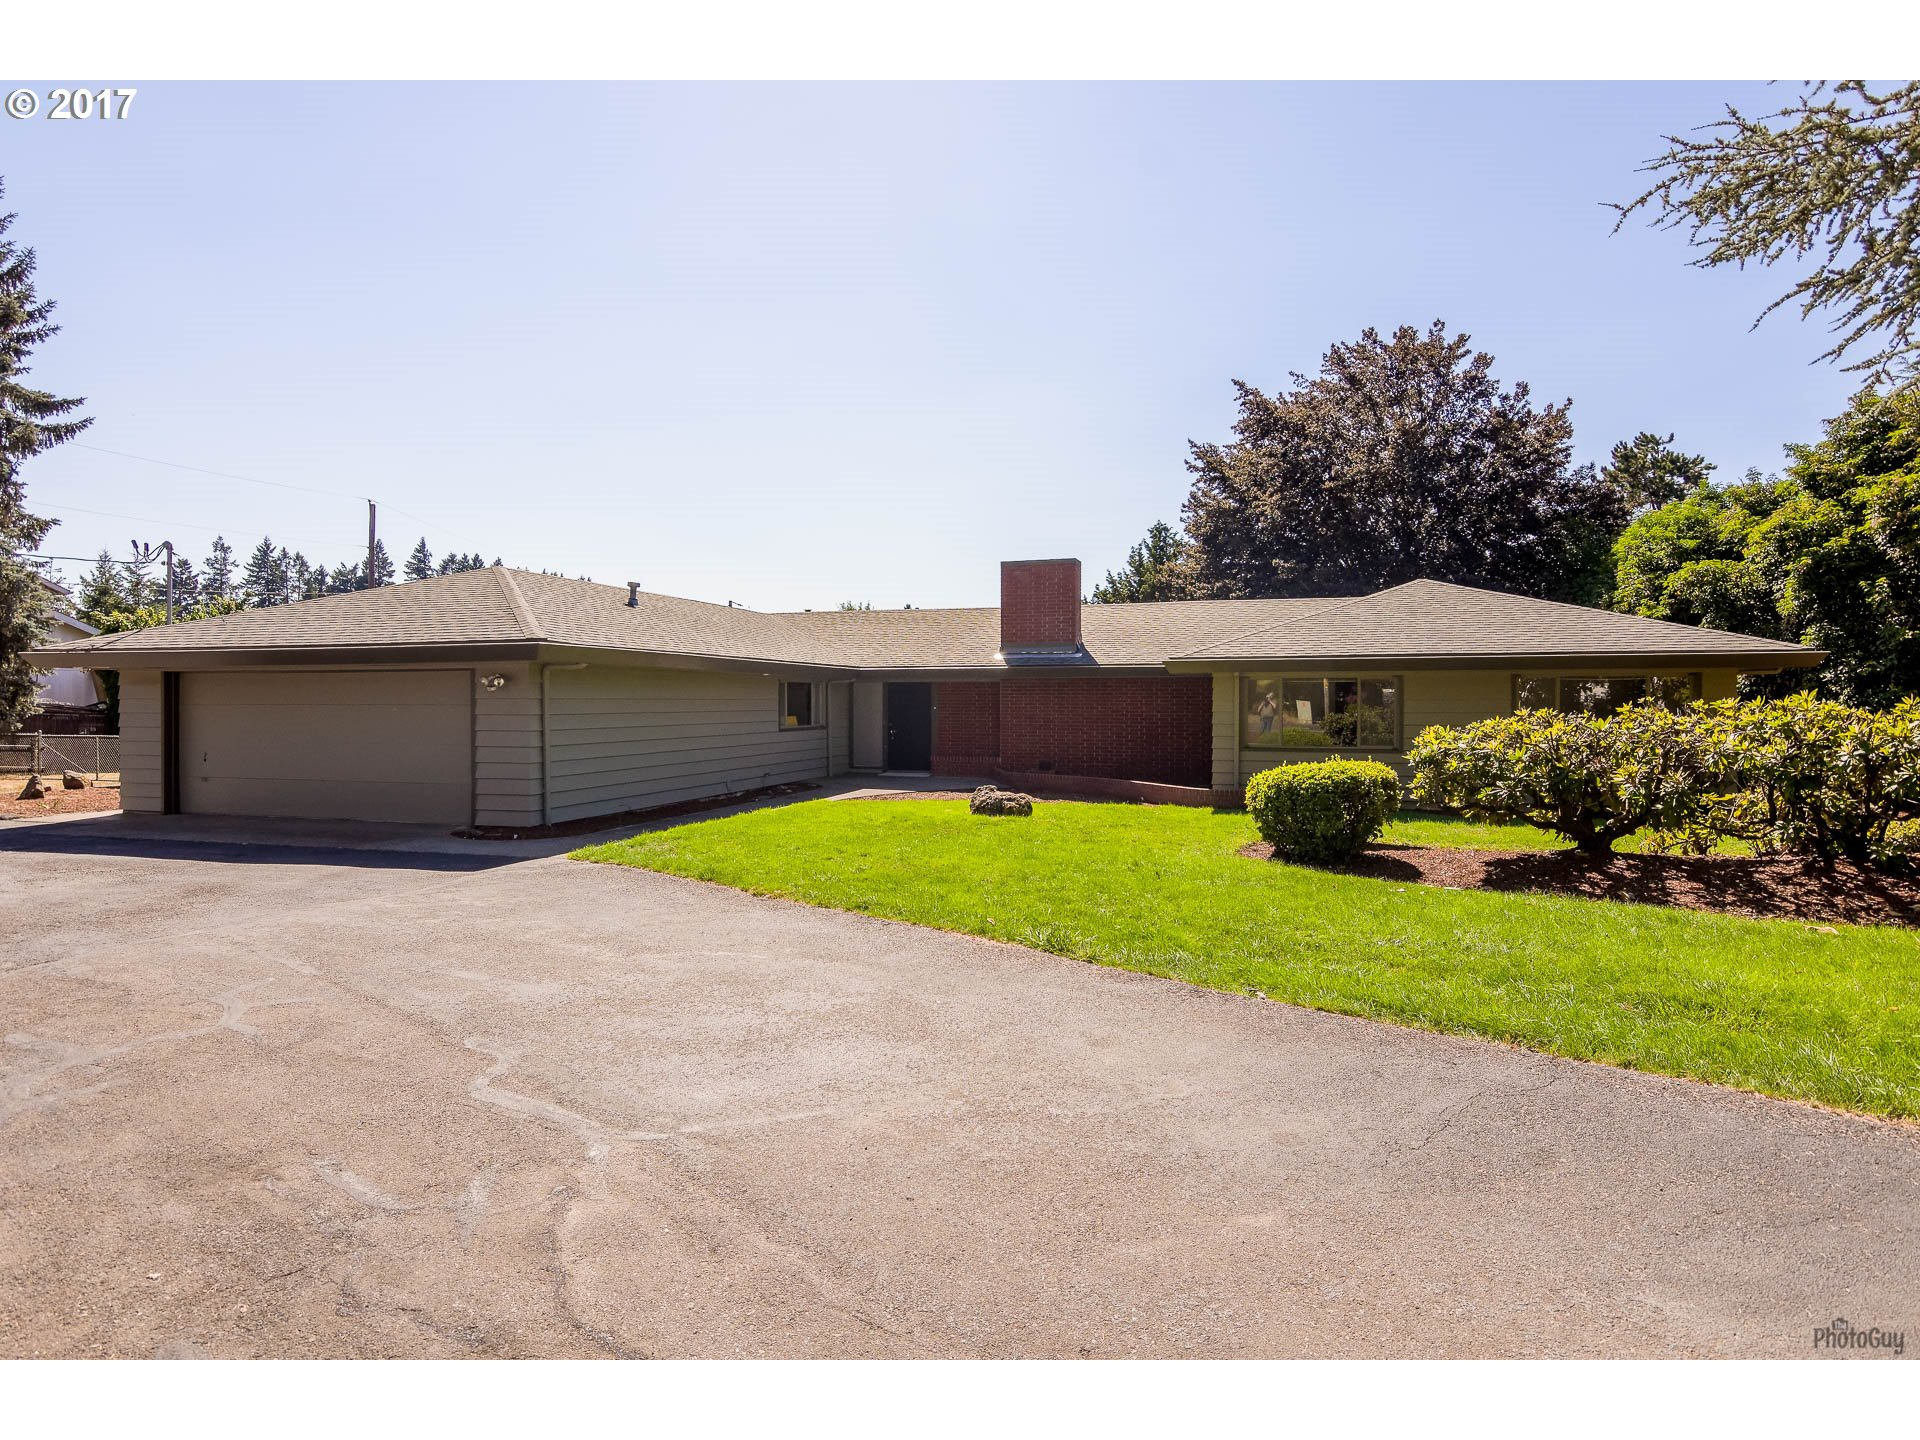 1731 S 6TH ST, Cottage Grove, OR 97424